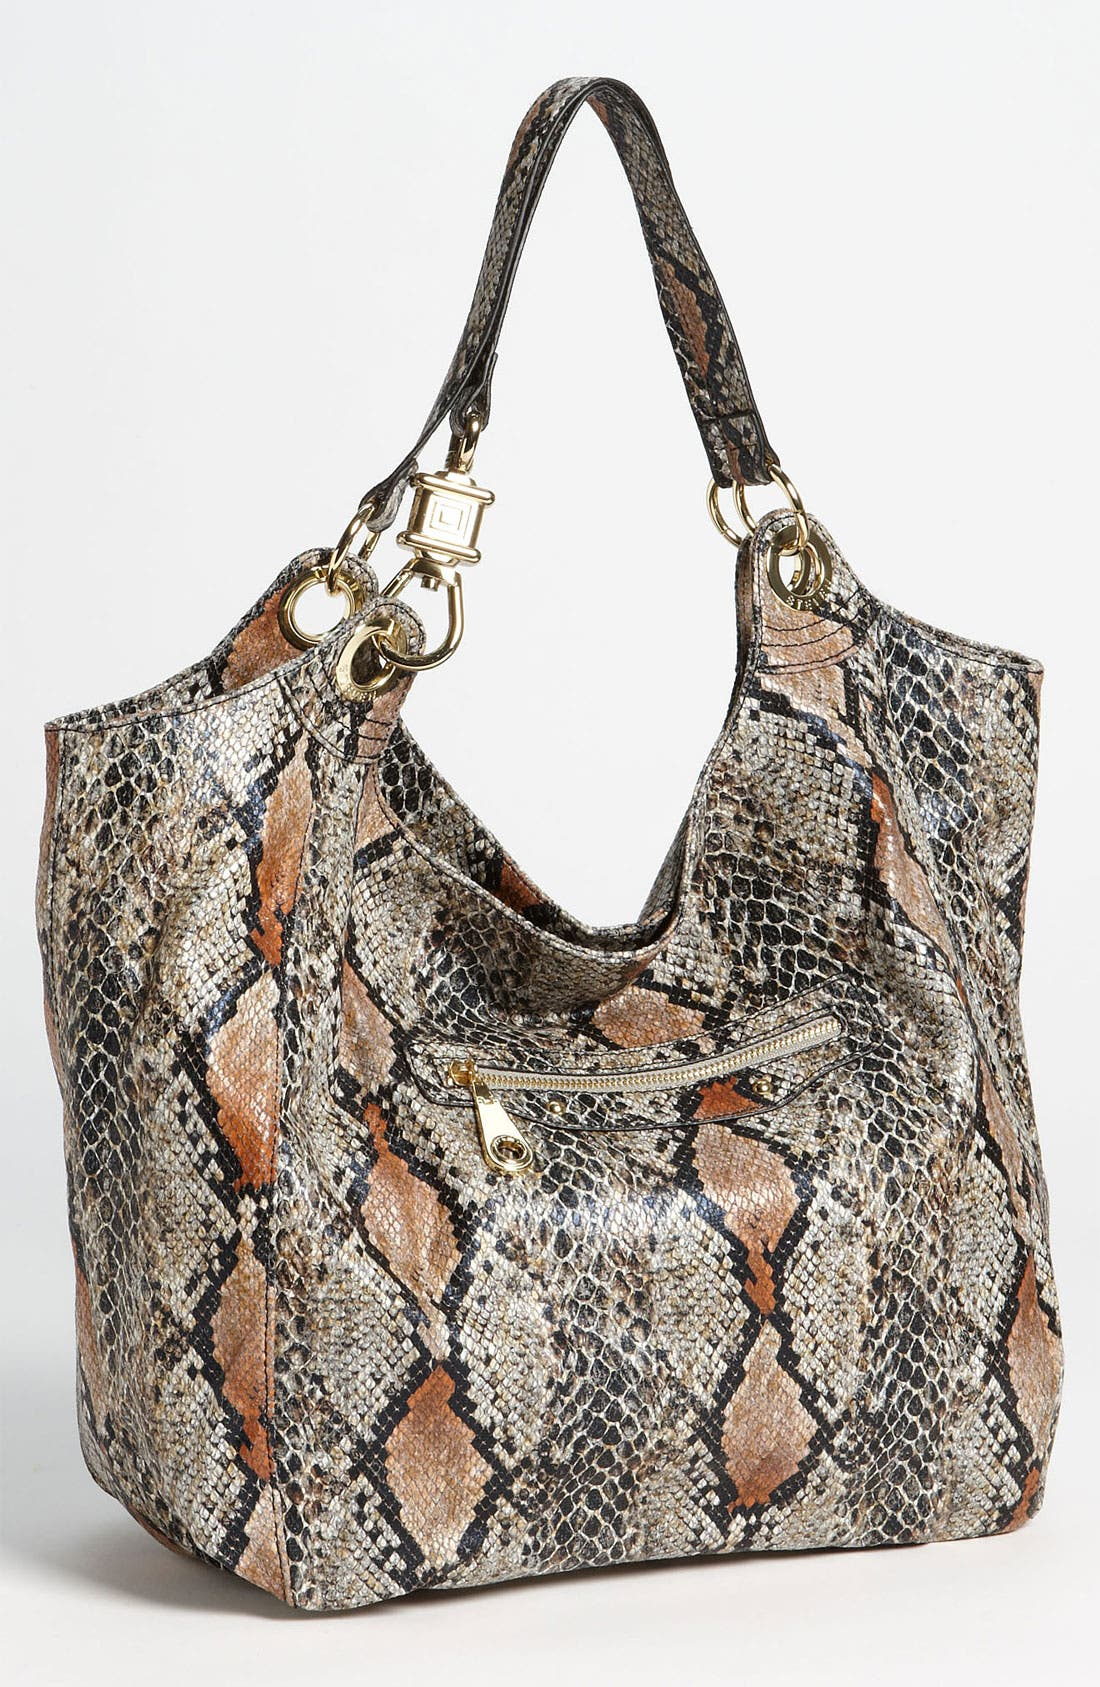 Alternate Image 1 Selected - Steven by Steve Madden 'Sugar' Tote